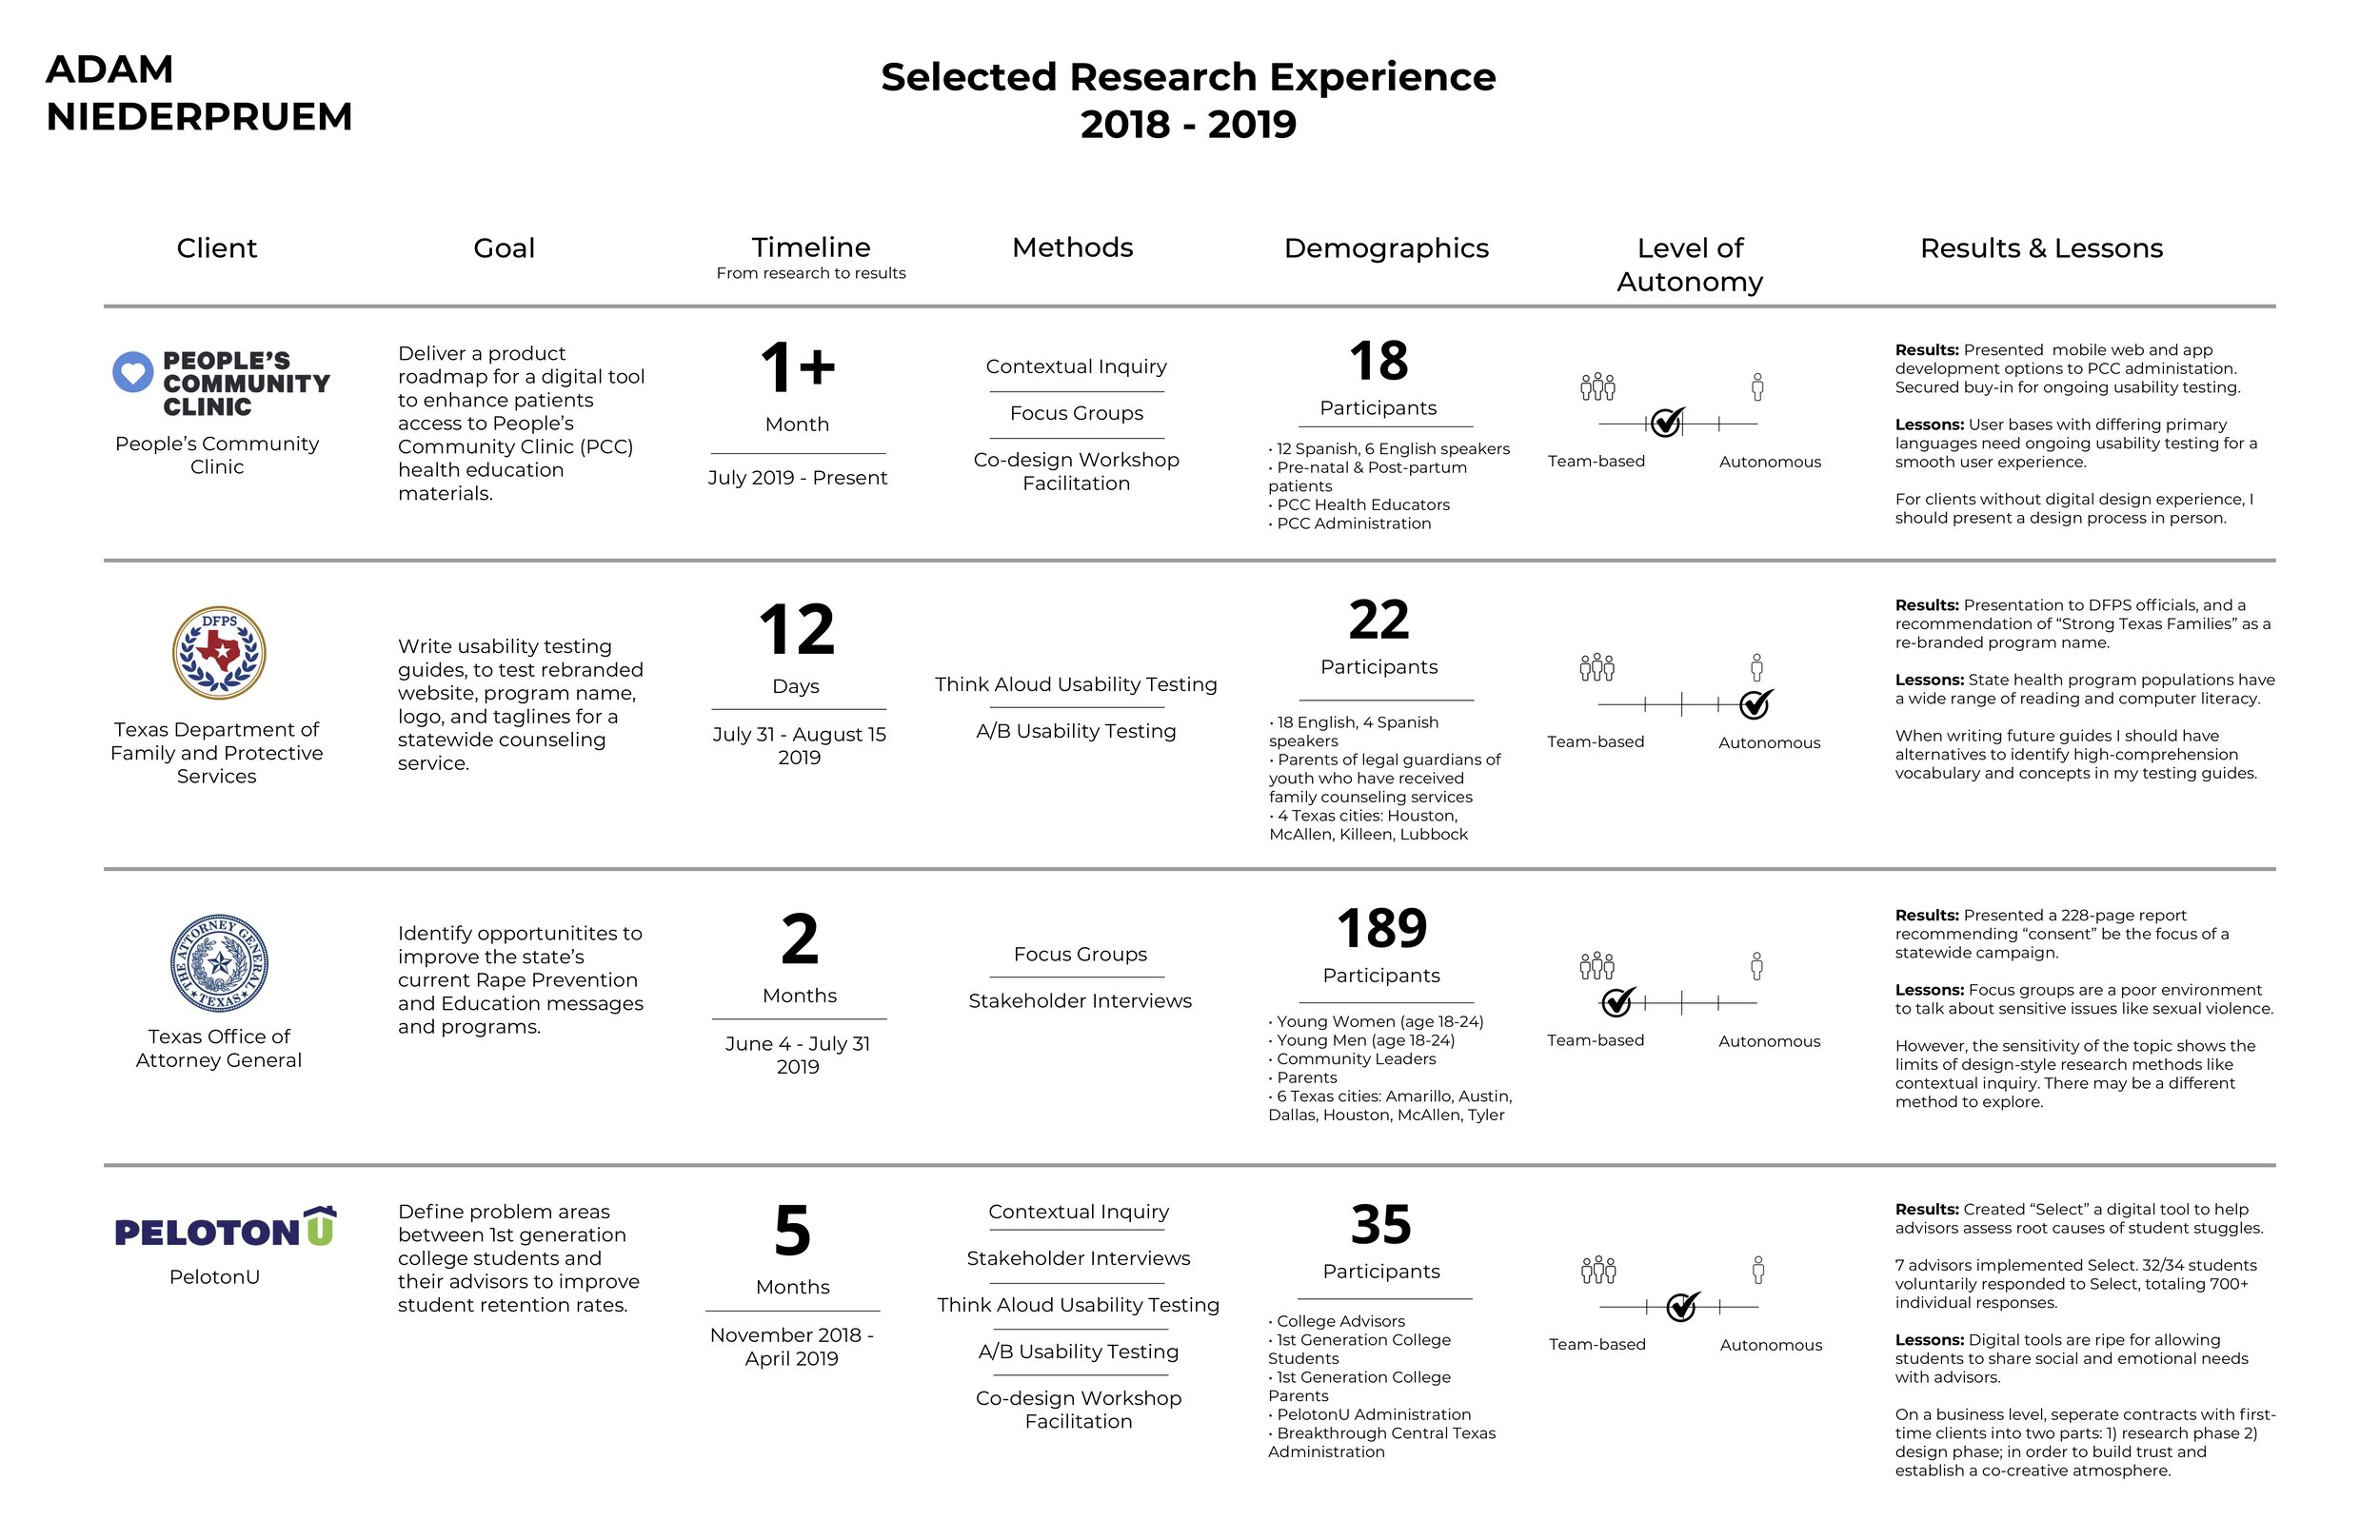 Selected Research Experience_FINAL_8-19-2019.jpg